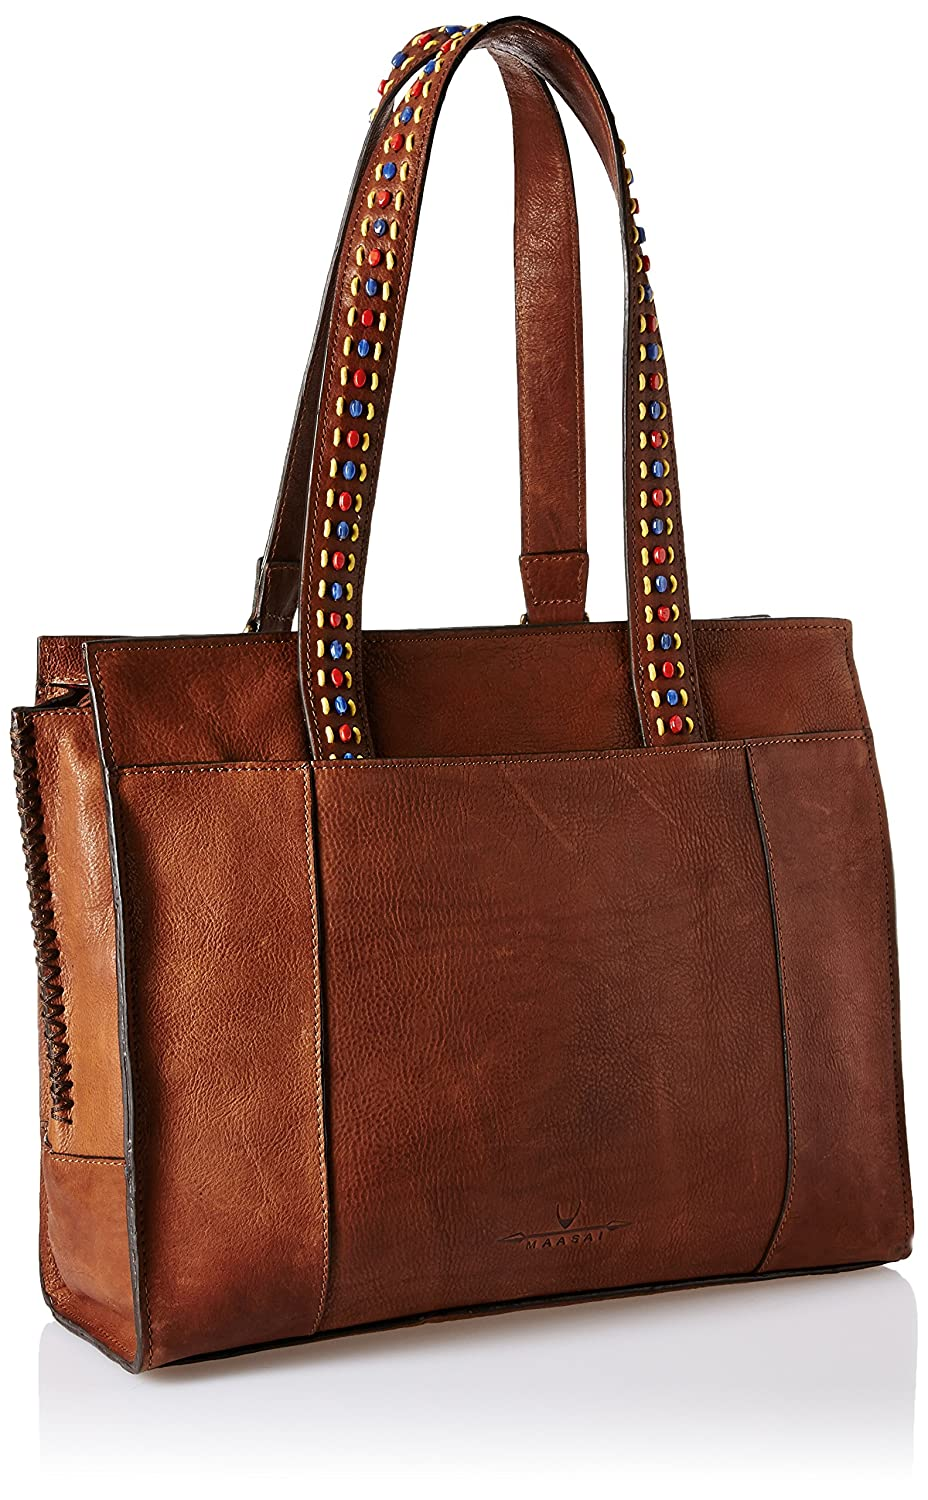 c03215a1744 Hidesign Maasai Women s Tote Bag (Tan)  Amazon.in  Shoes   Handbags